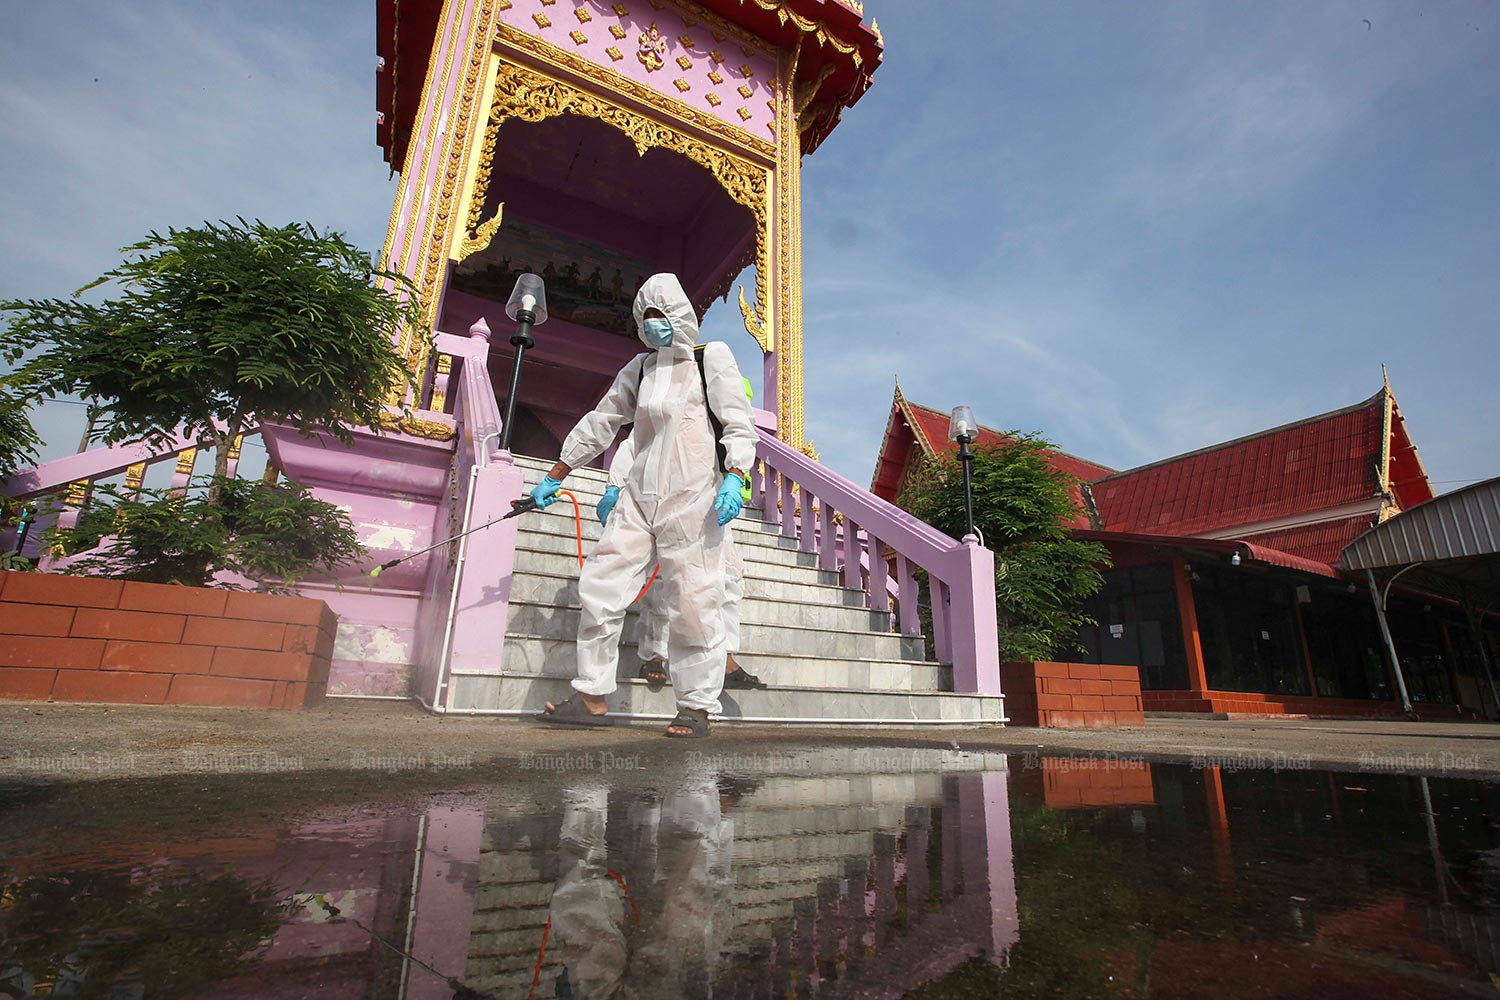 Clean send-off: Monks in protective overalls spray disinfectant around the crematorium at Wat Bang Muang in Nonthaburi's Bang Yai district, one of the temples equipped to cremate the bodies of those who died of Covid-19. (Photo by Pattarapong Chatpattarasill)